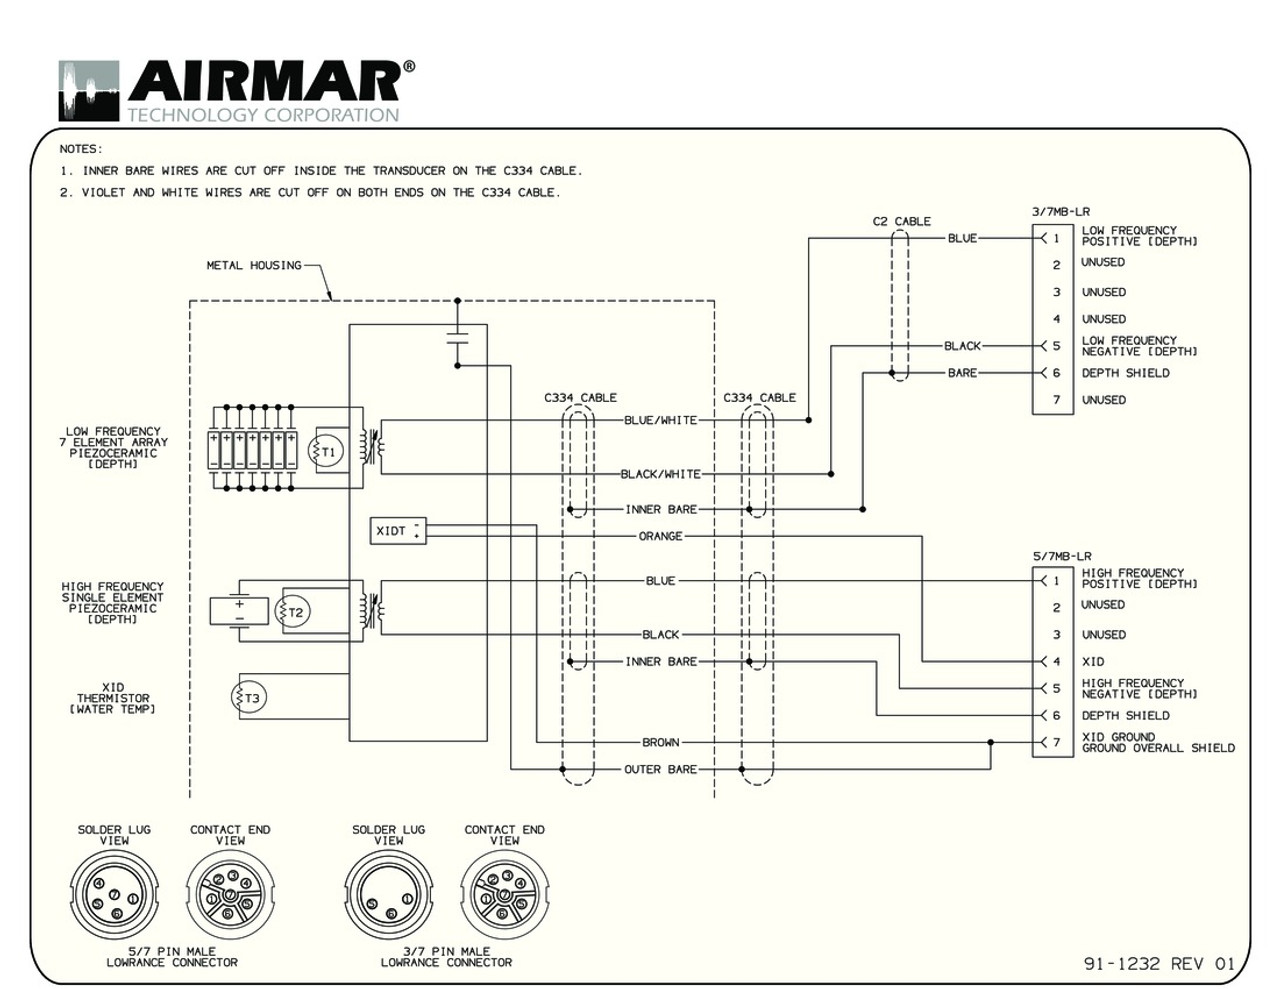 7 Pin Plug Wiring Diagram For Lowrance Wire Center Elite 127 49 Airmar Navico Non Diplex 1kw Blue Bottle Marine Rh Bluebottlemarine Com Trailer Brake Phillips